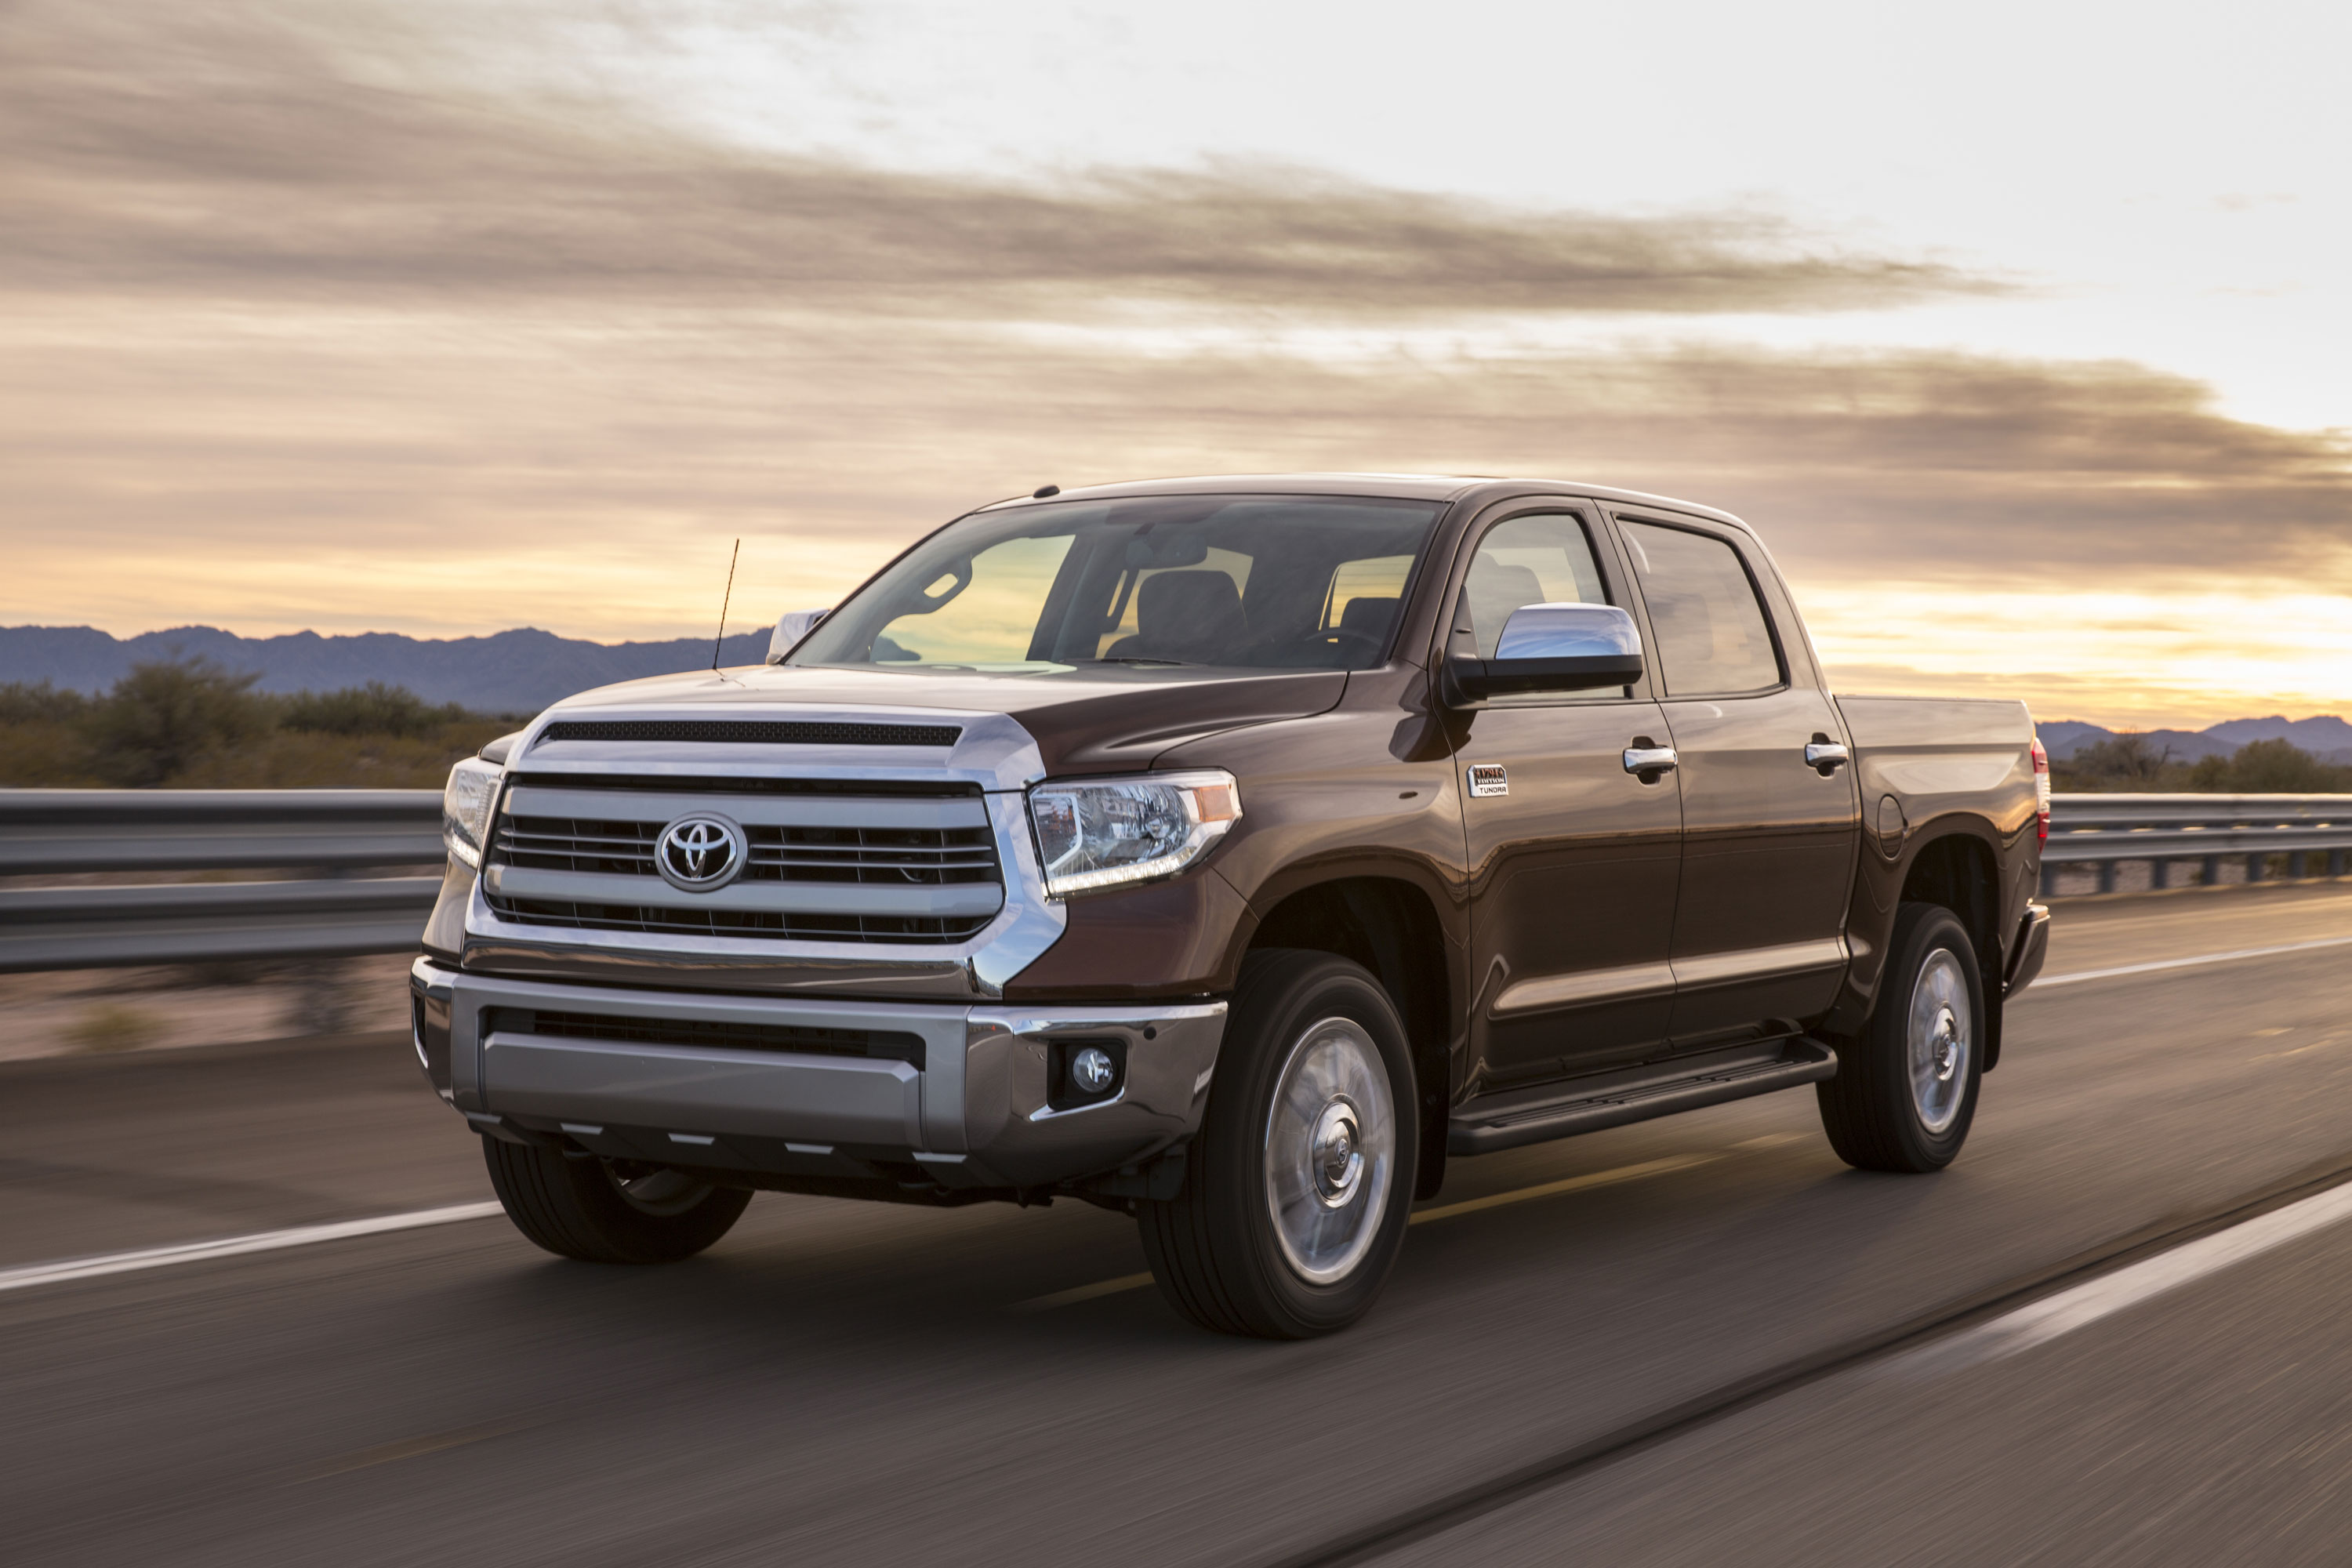 toyota cars expert photos com specs tundra research reviews and